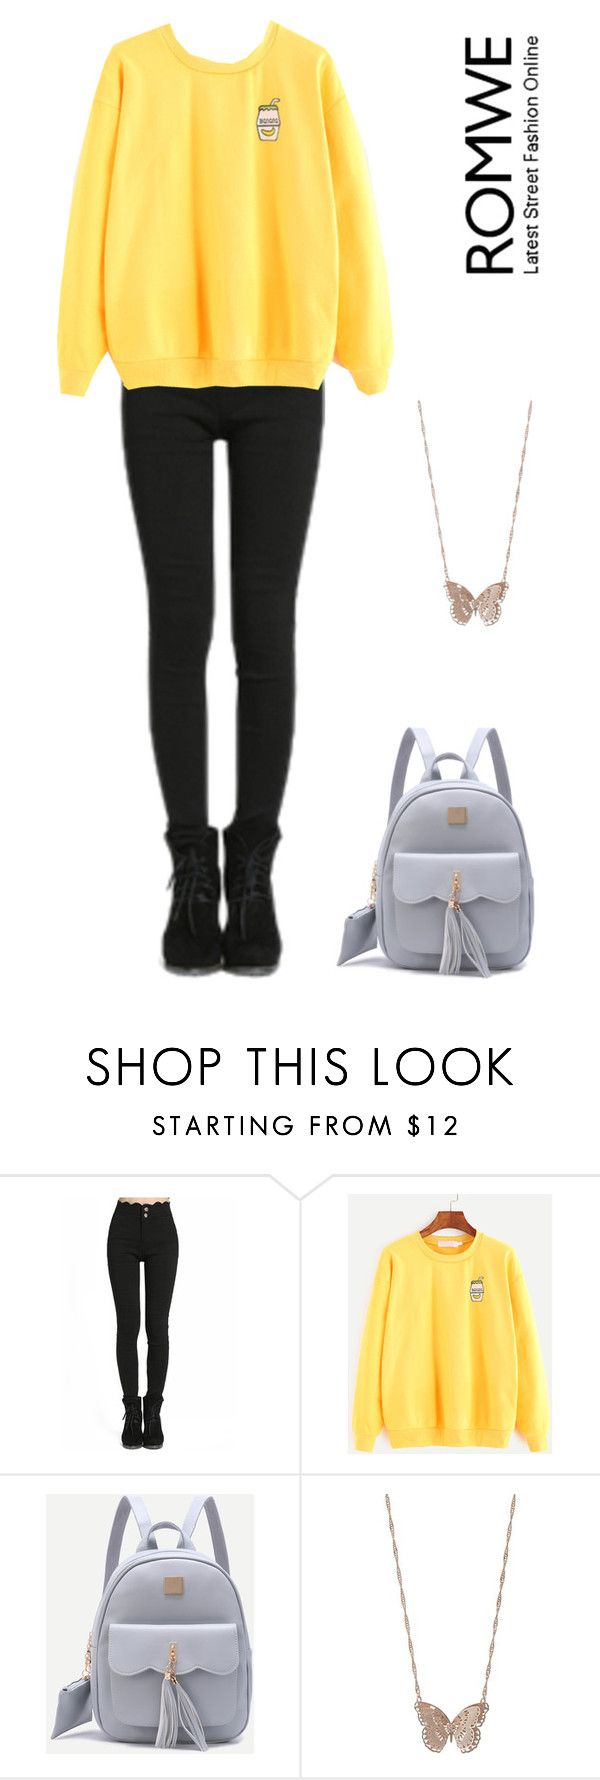 """""""Untitled #495"""" by natalynov ❤ liked on Polyvore featuring LC Lauren Conrad"""